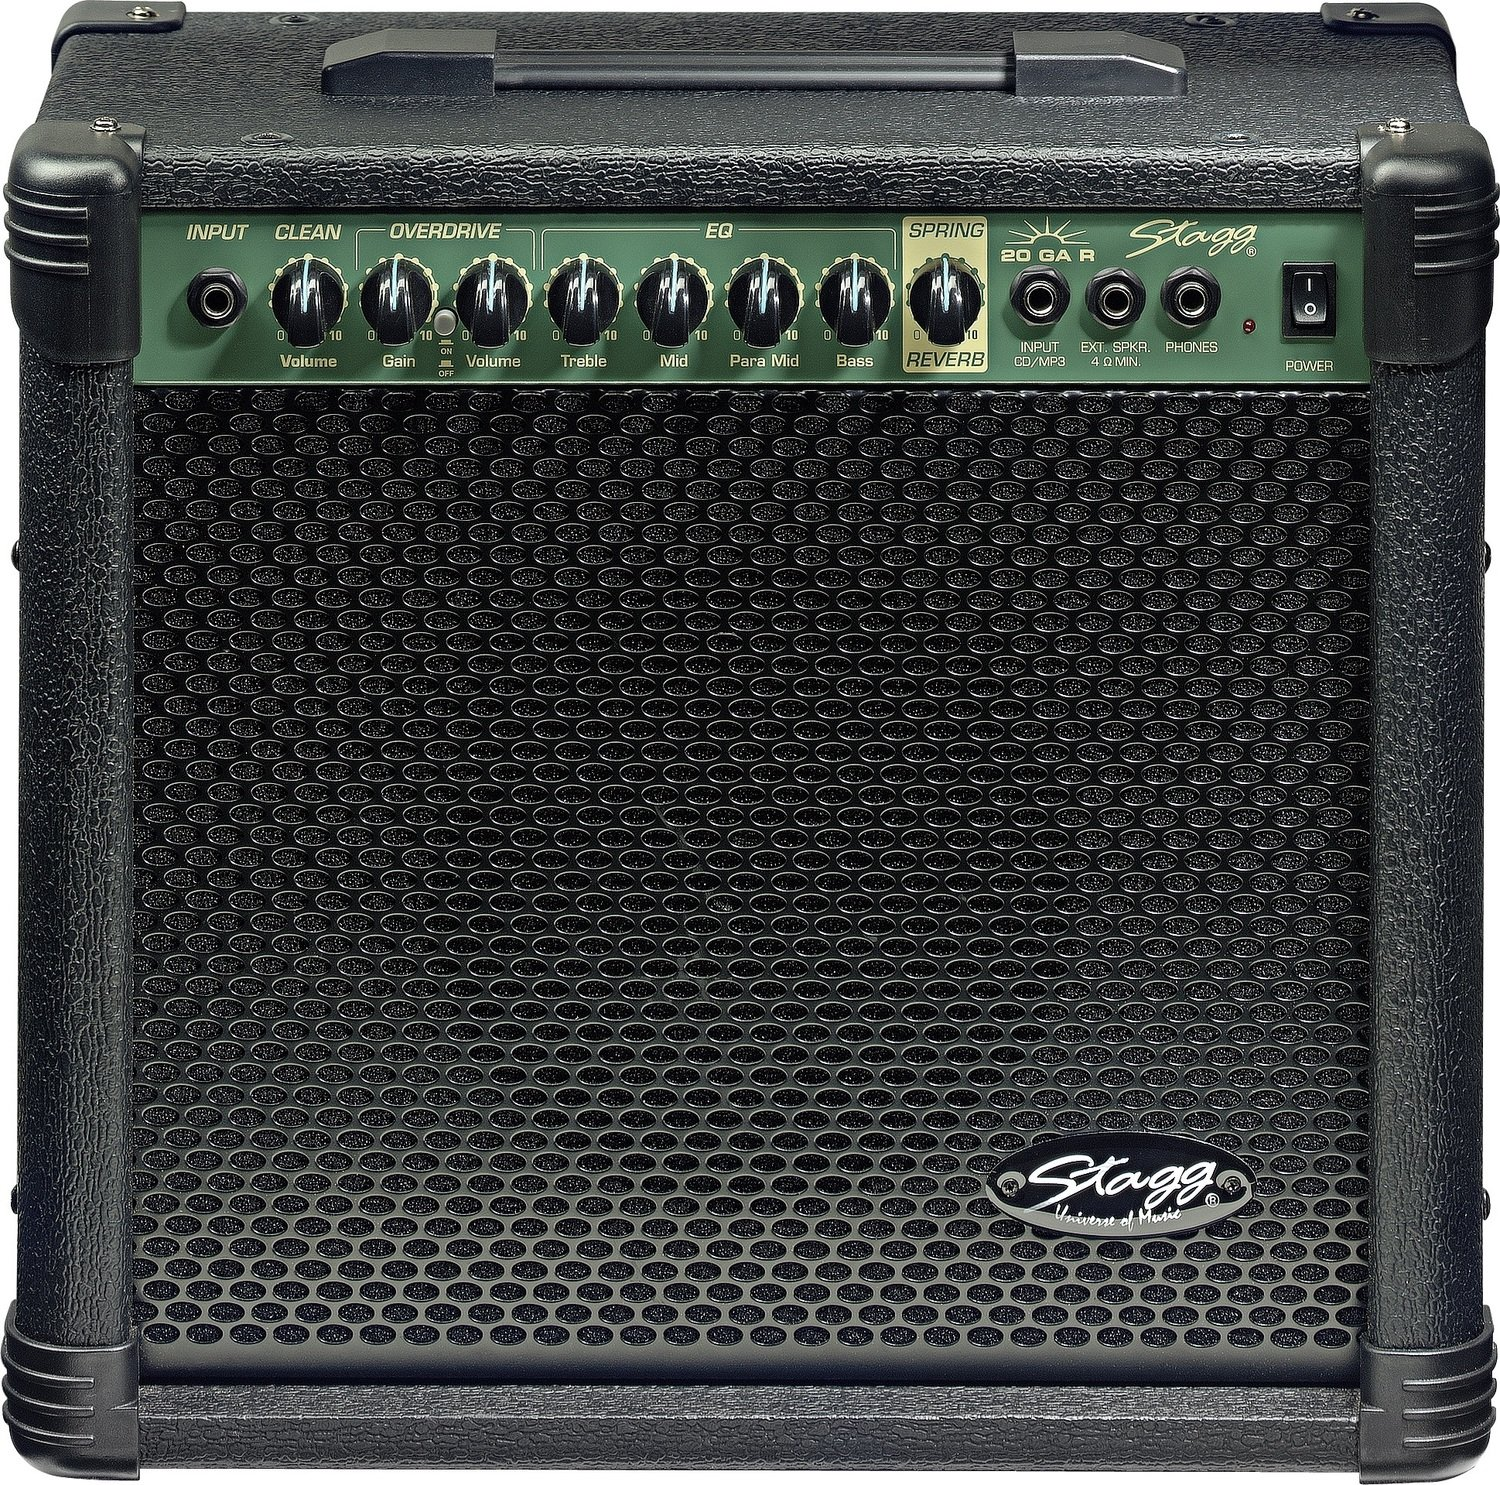 Stagg 20 GA R USA - 20-Watt Electric Guitar Amplifier with Spring Reverb